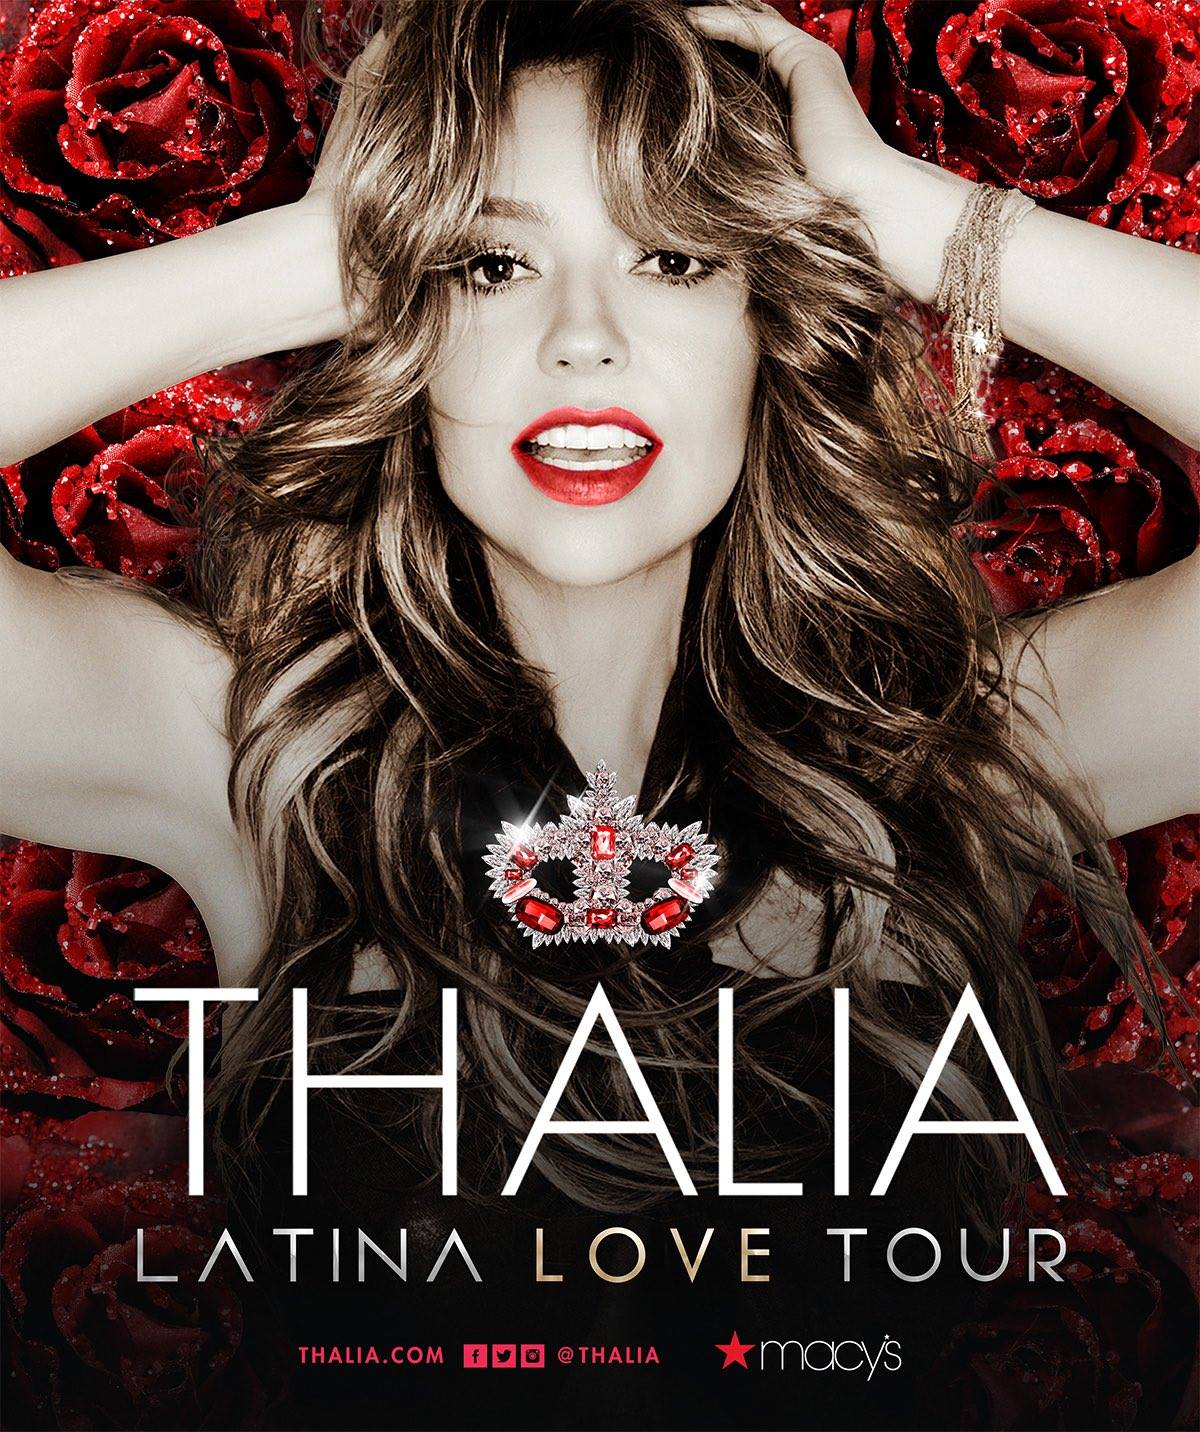 latinalovetour